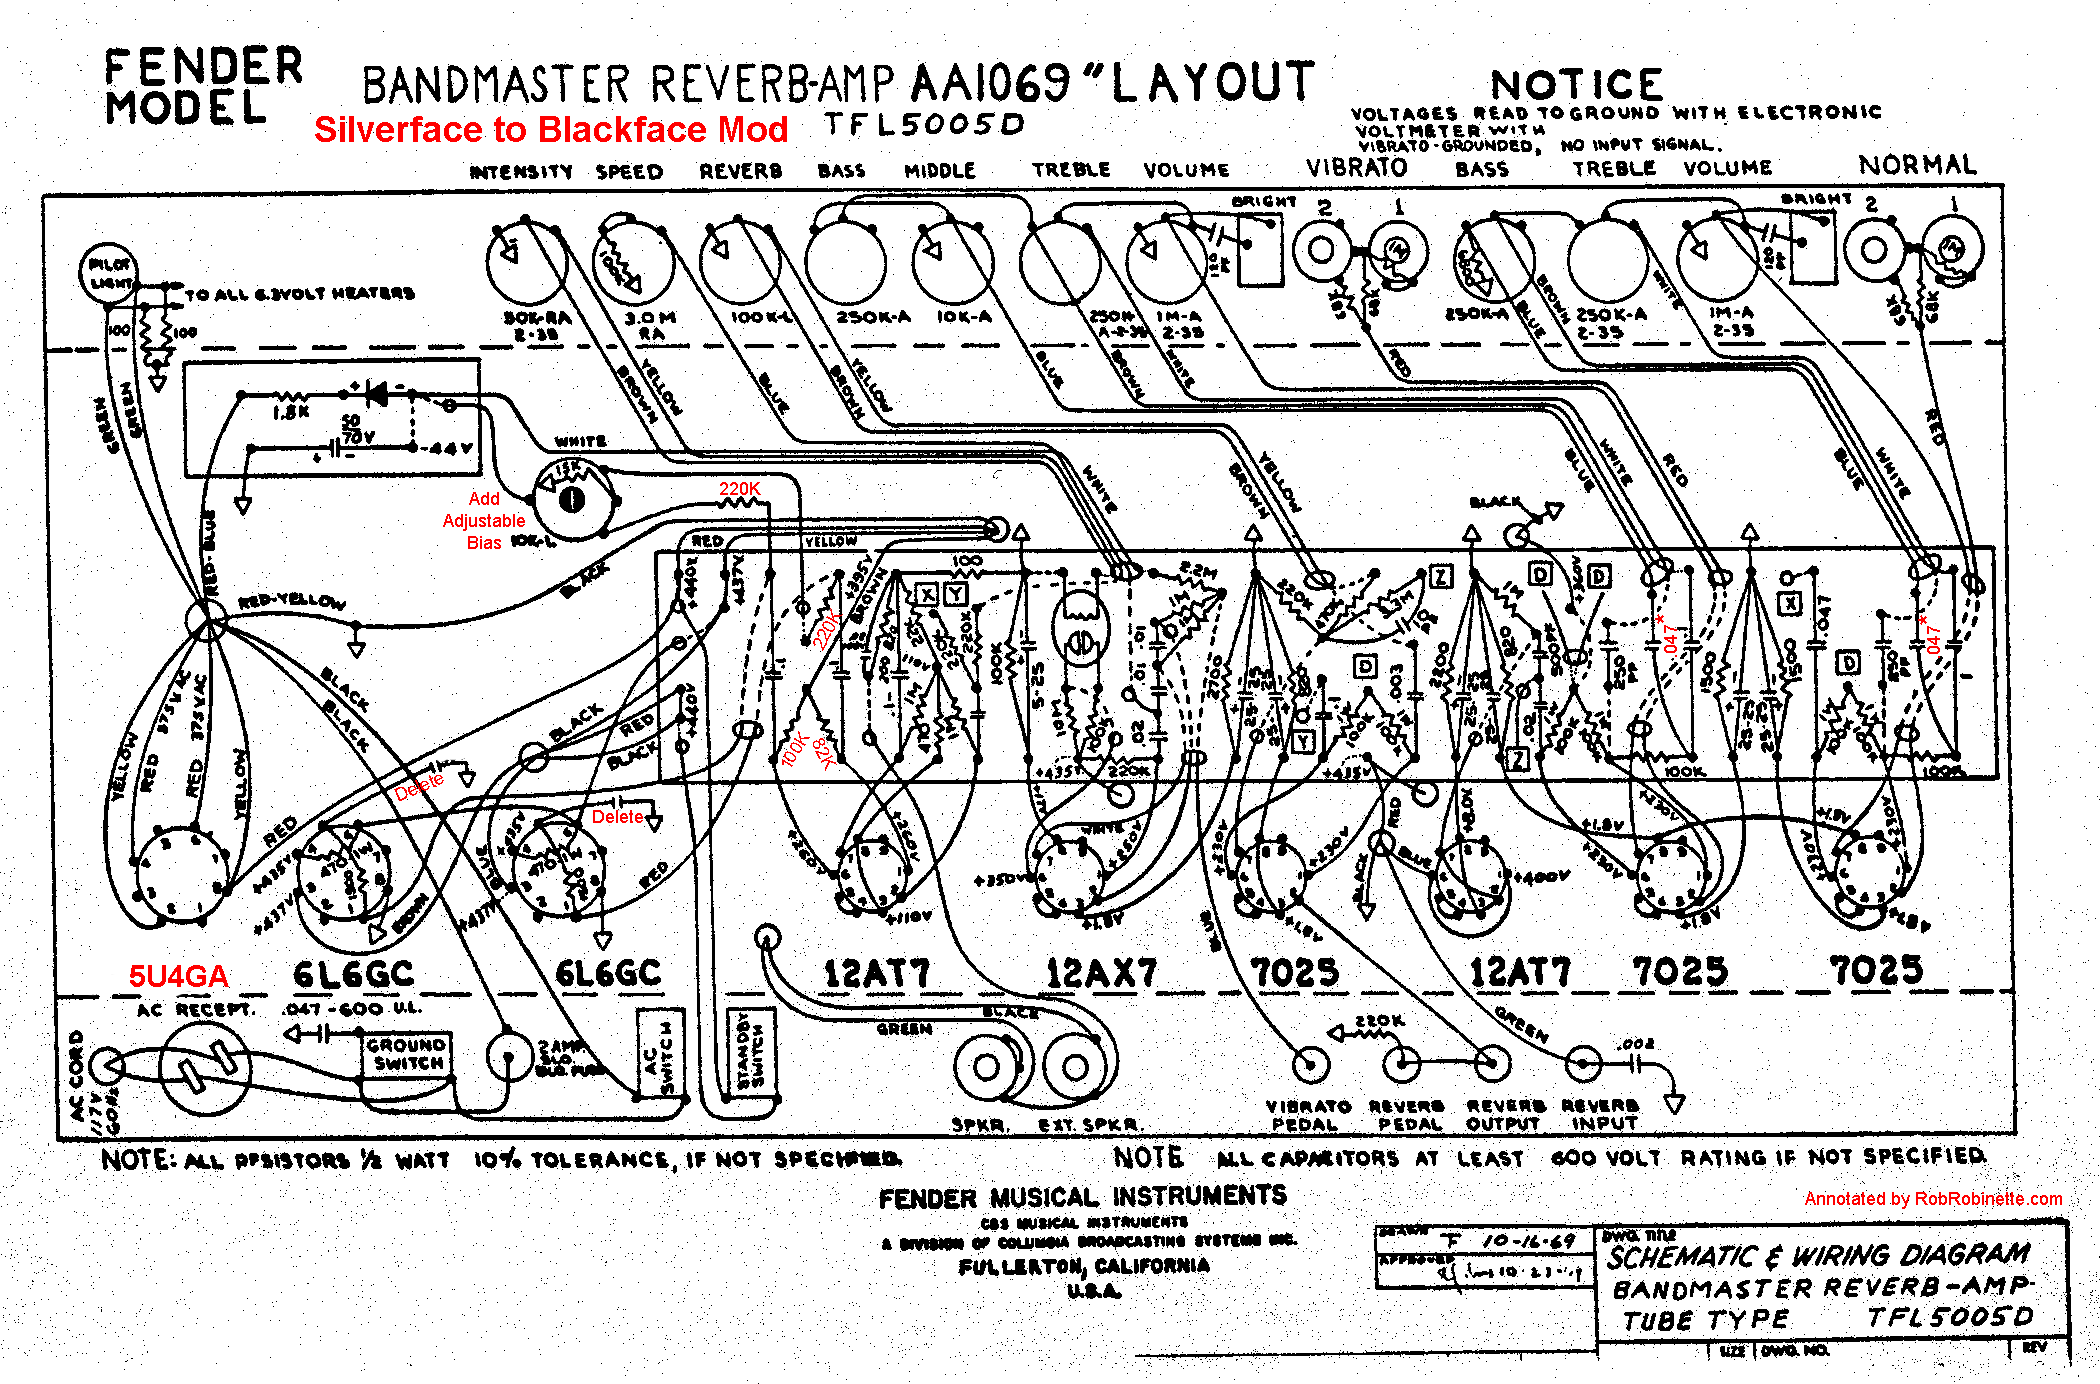 Ab763 Mods Guitar Push Pull Switch Wiring Diagram The Vibroverb Came With An 8 Ohm Output Transformer 820 47 Negative Feedback Circuit Bandmaster Reverb Uses A 4